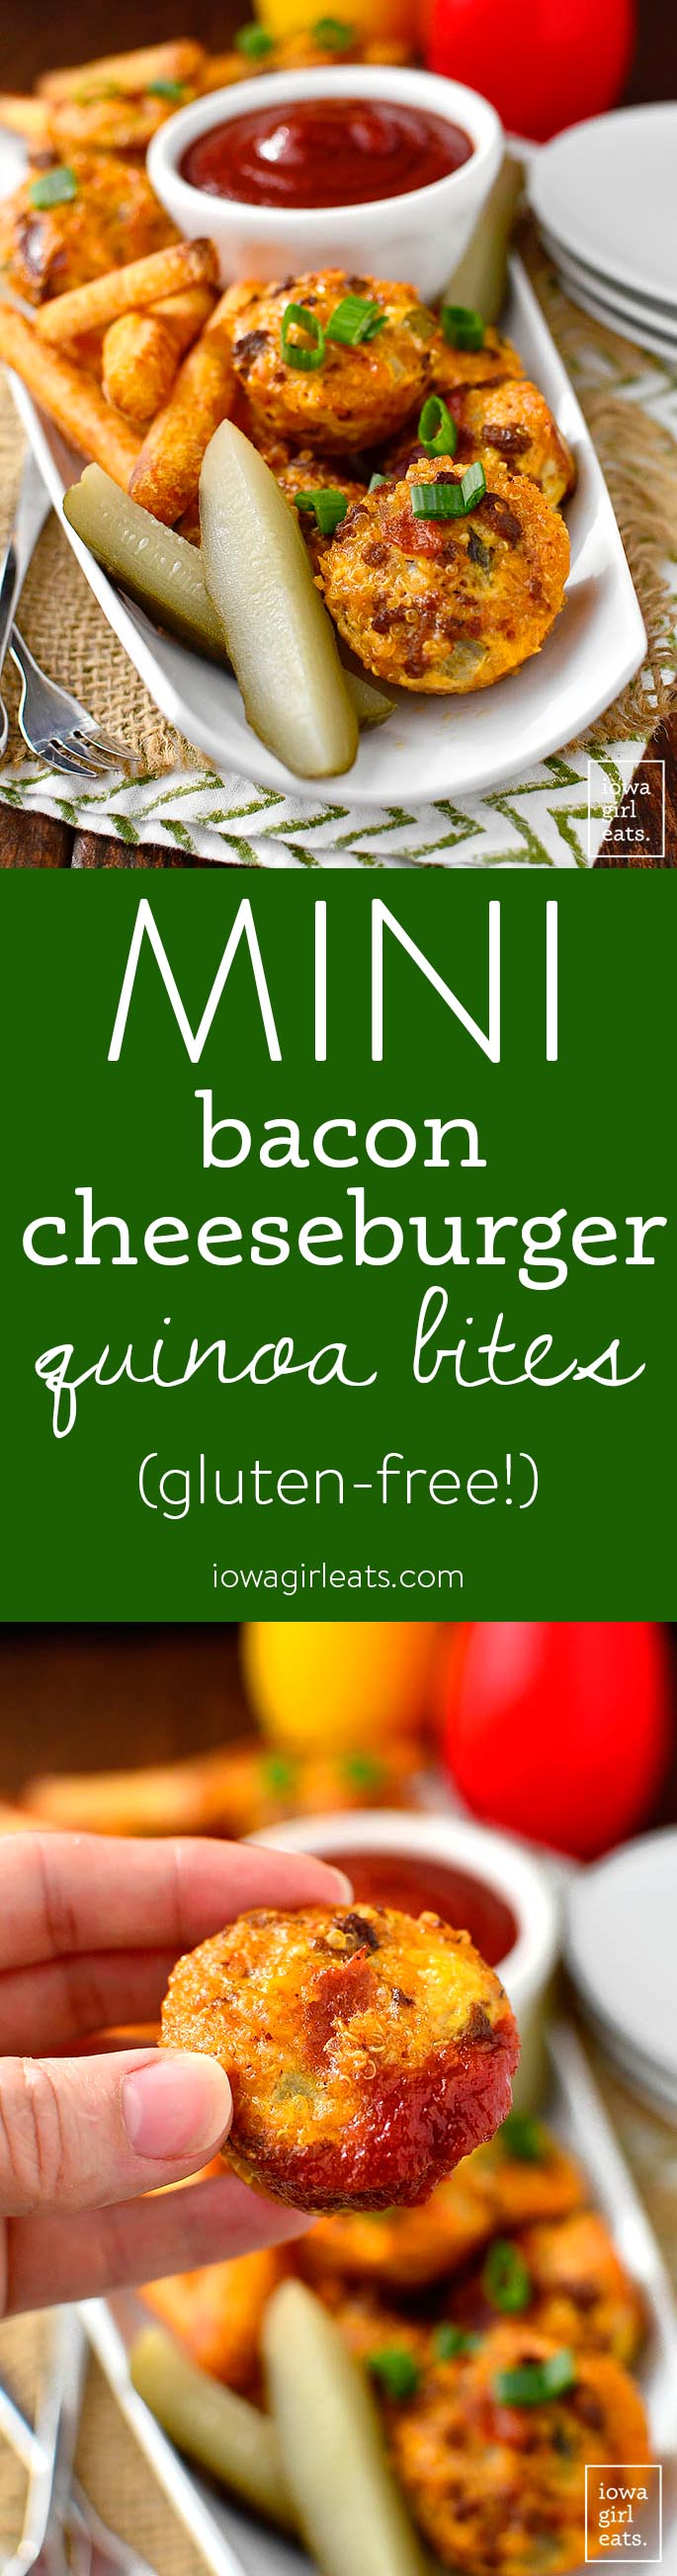 Mini Bacon Cheeseburger Quinoa Bites are bite-sized, gluten-free bacon cheeseburgers with a boost of extra protein! | iowagirleats.com